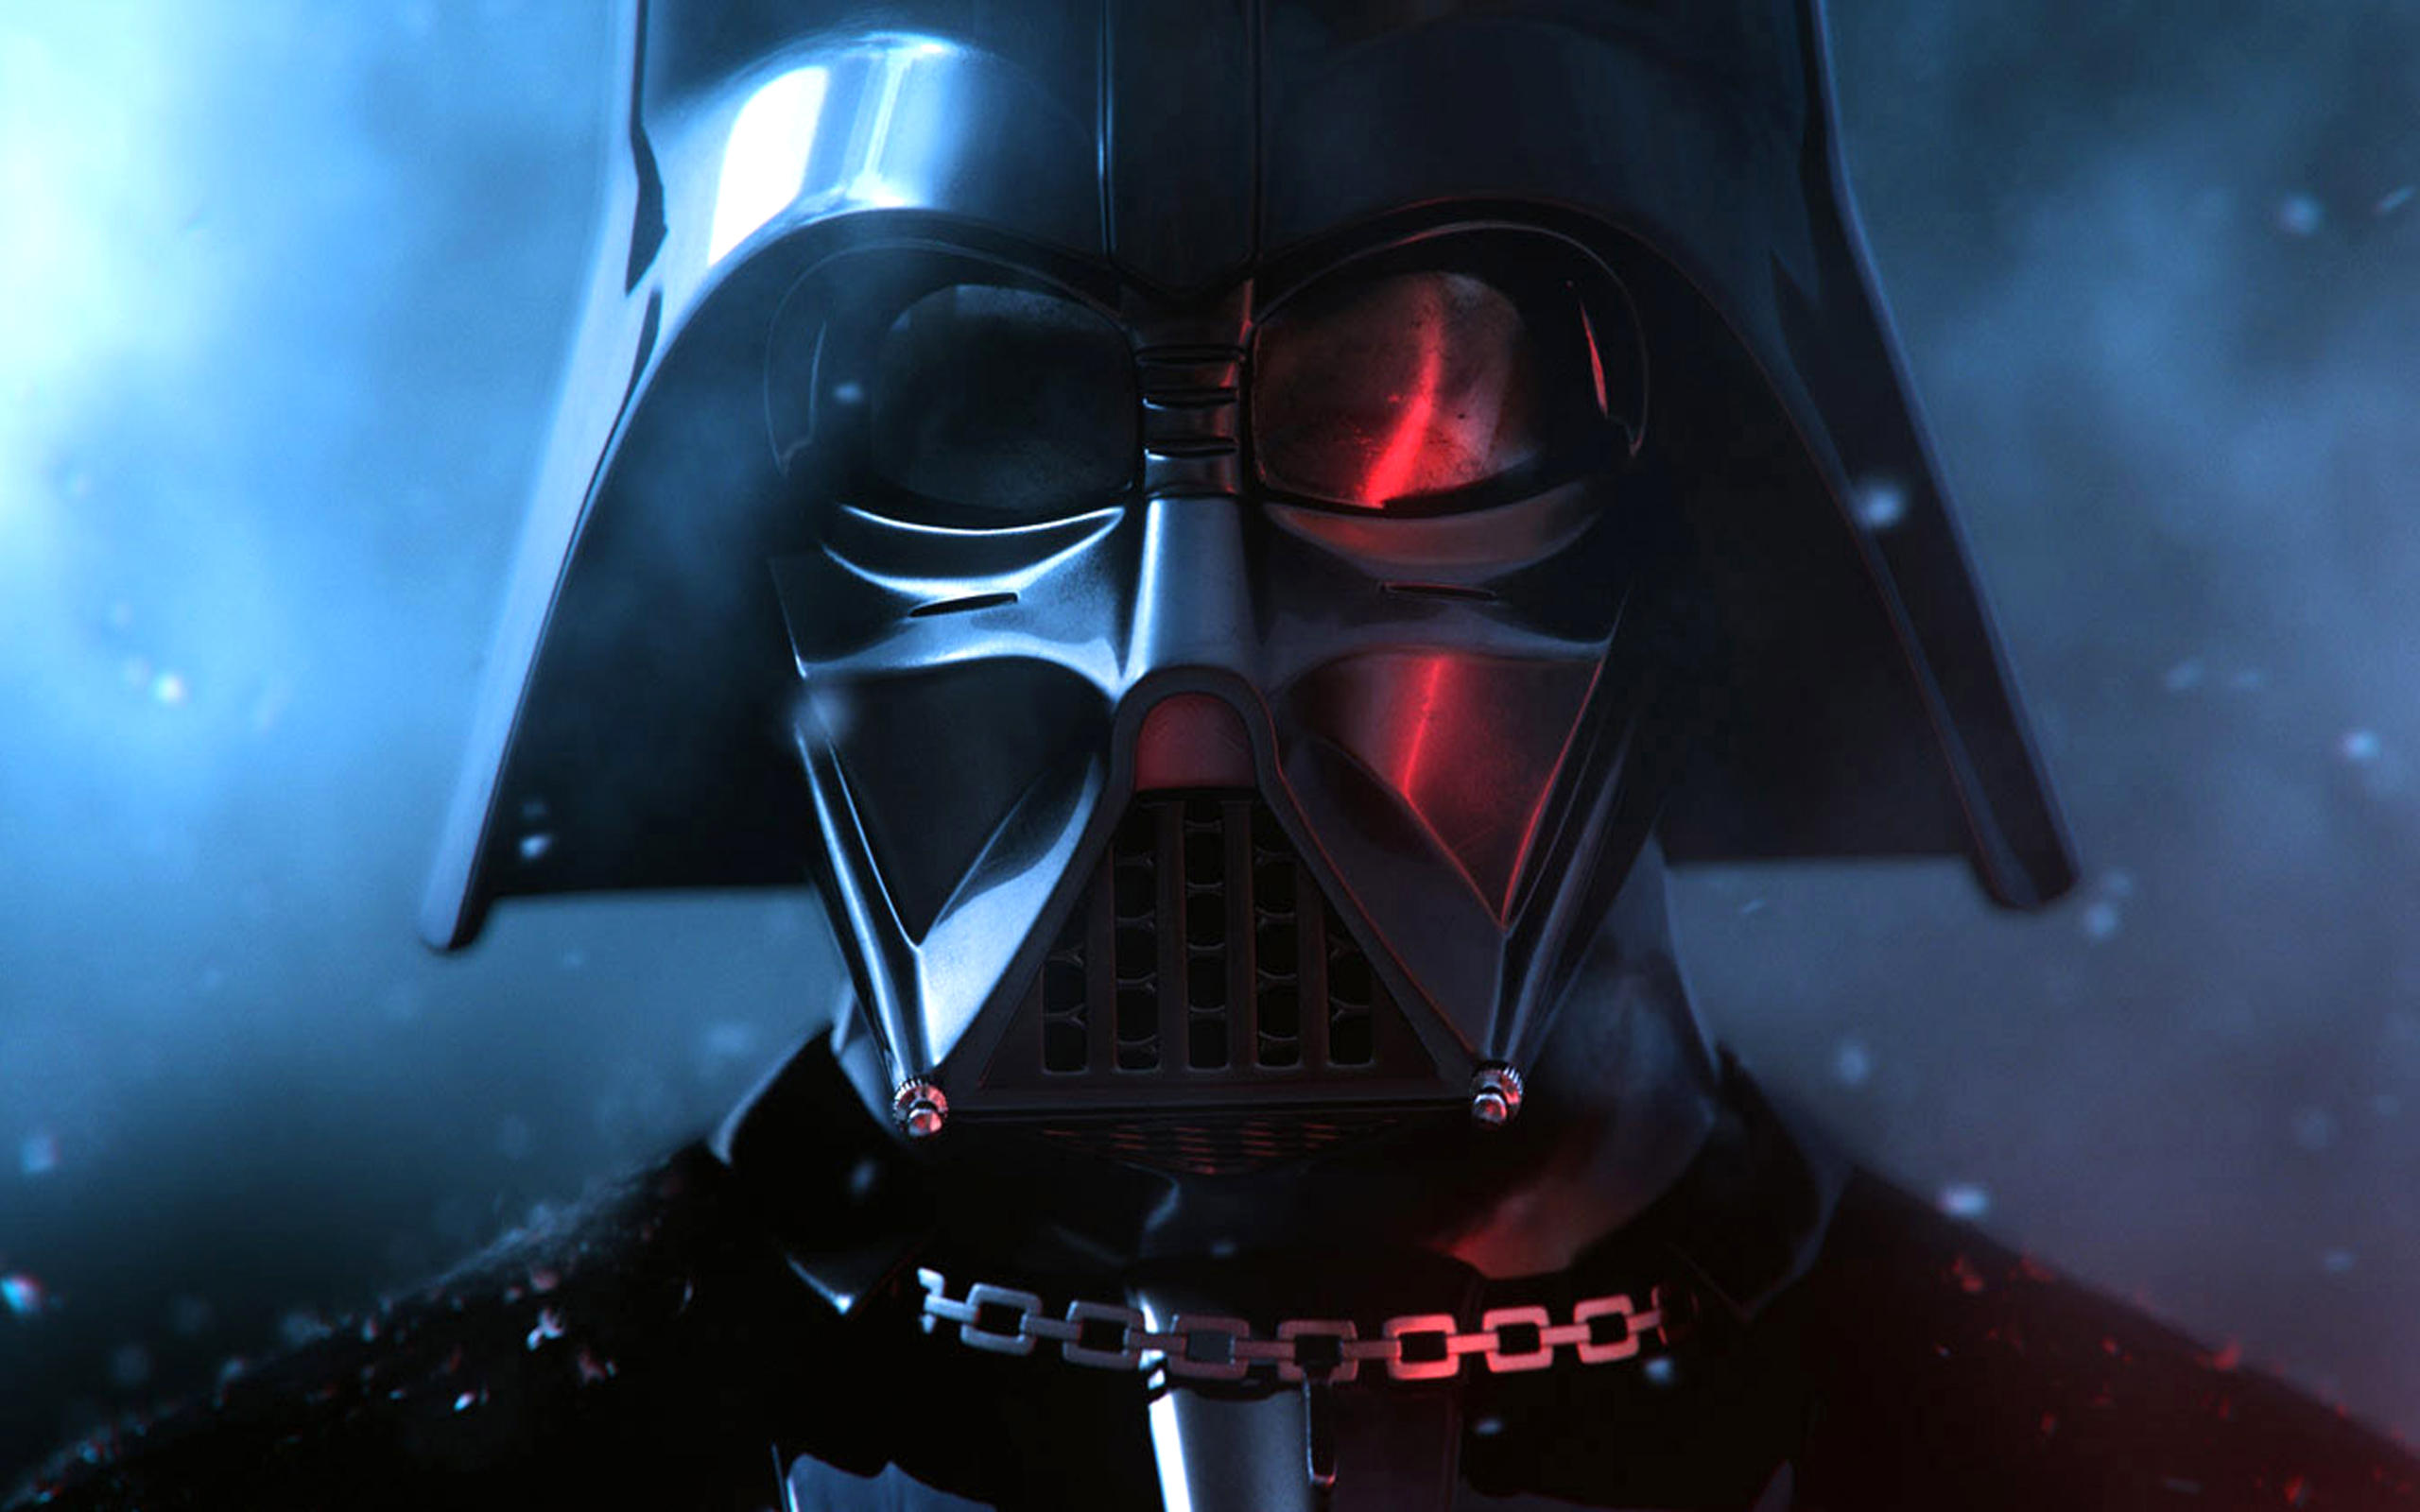 'Star Wars Rebels' Bringing Back James Earl Jones to Voice Darth Vader